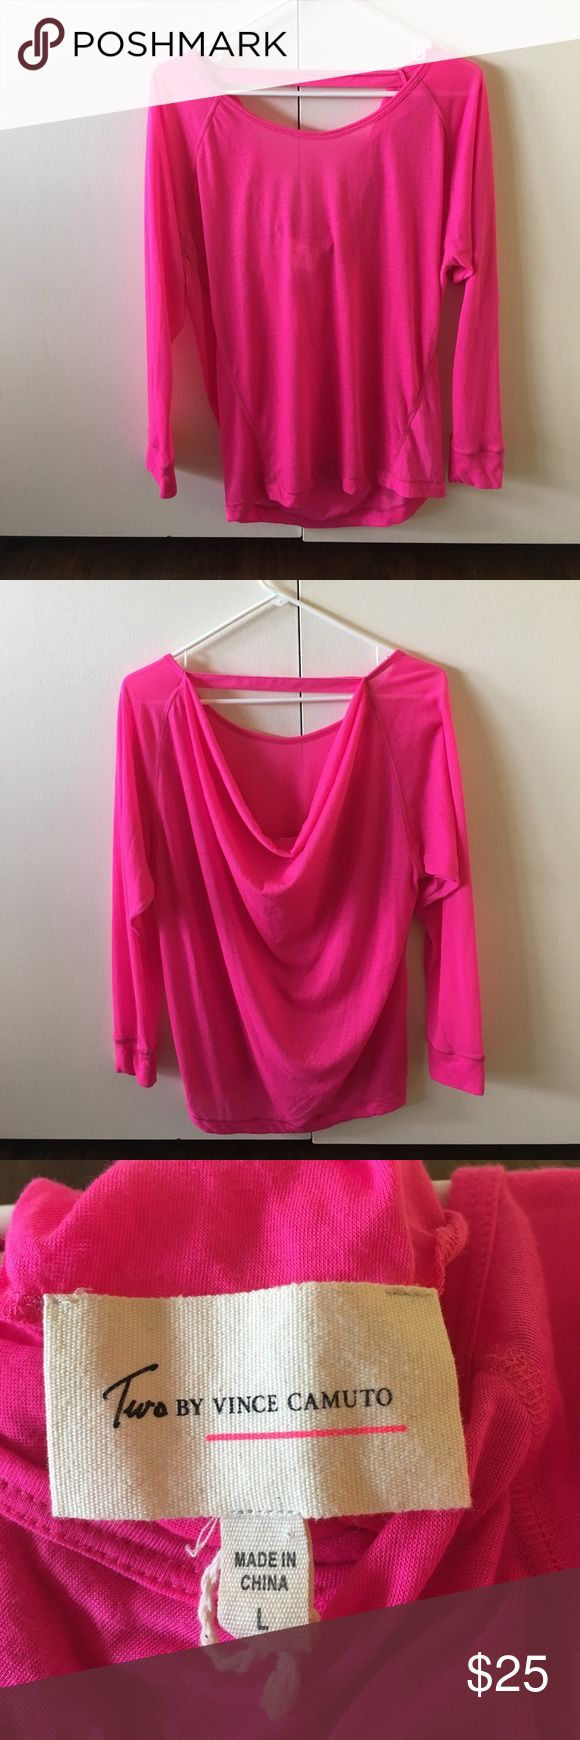 💗Two by VC HOT PINK Top with cowl back Size L💗 Two by Vince Camuto Hot Pink Long Sleeve tee Size Large. Interesting and unique back details: top fabric strap by the neck and a loose cowl back with open space between the strap and cowl. Lightweight fabric and outstanding color! Barely worn and great for a variety of occasions!! Two by Vince Camuto Tops Tees - Long Sleeve